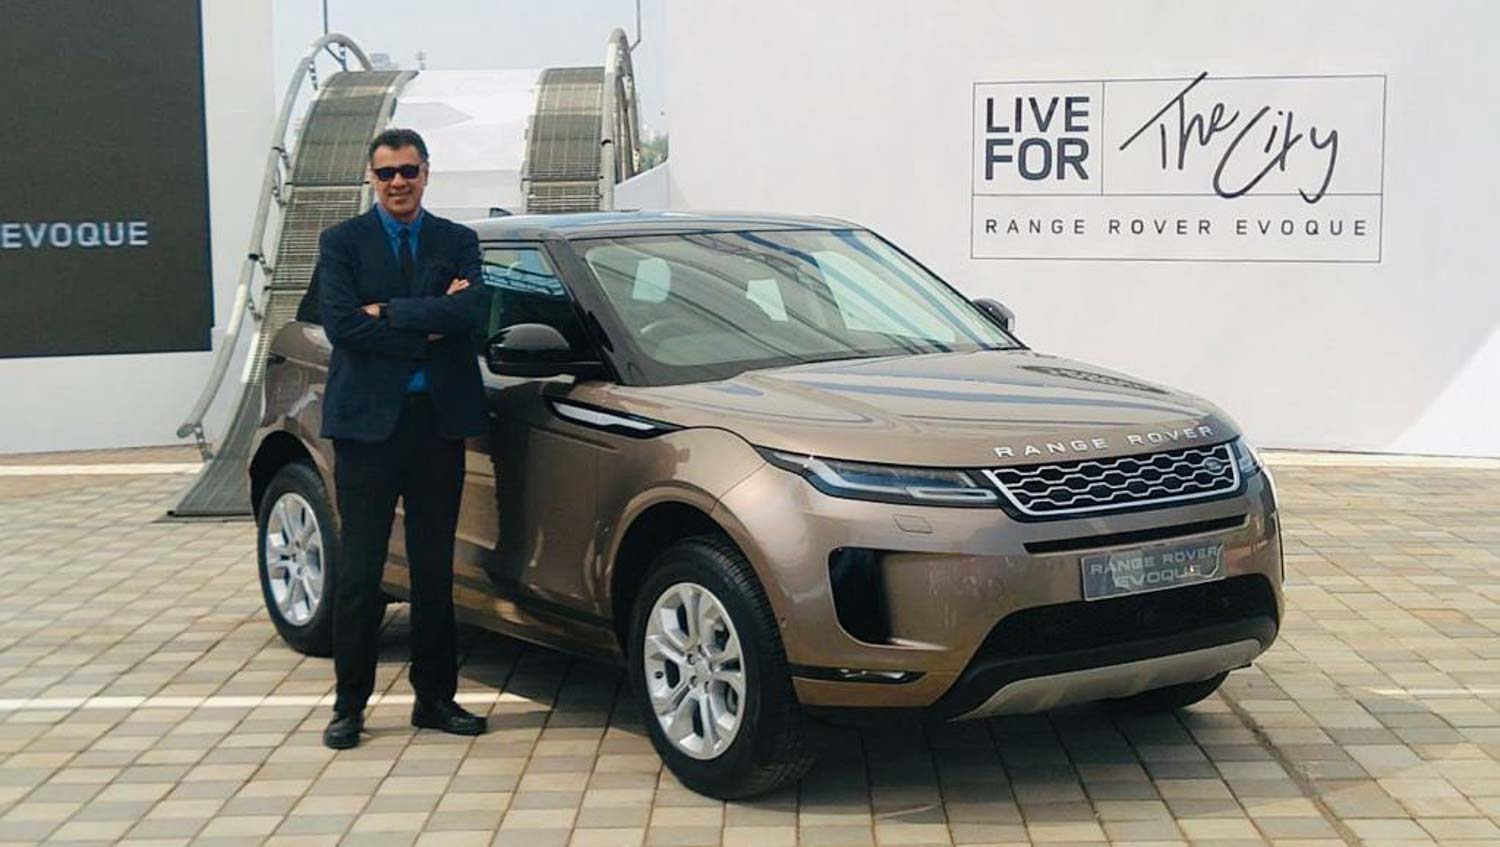 2020 Range Rover Evoque Launched In India From Rs. 54.94 Lakh